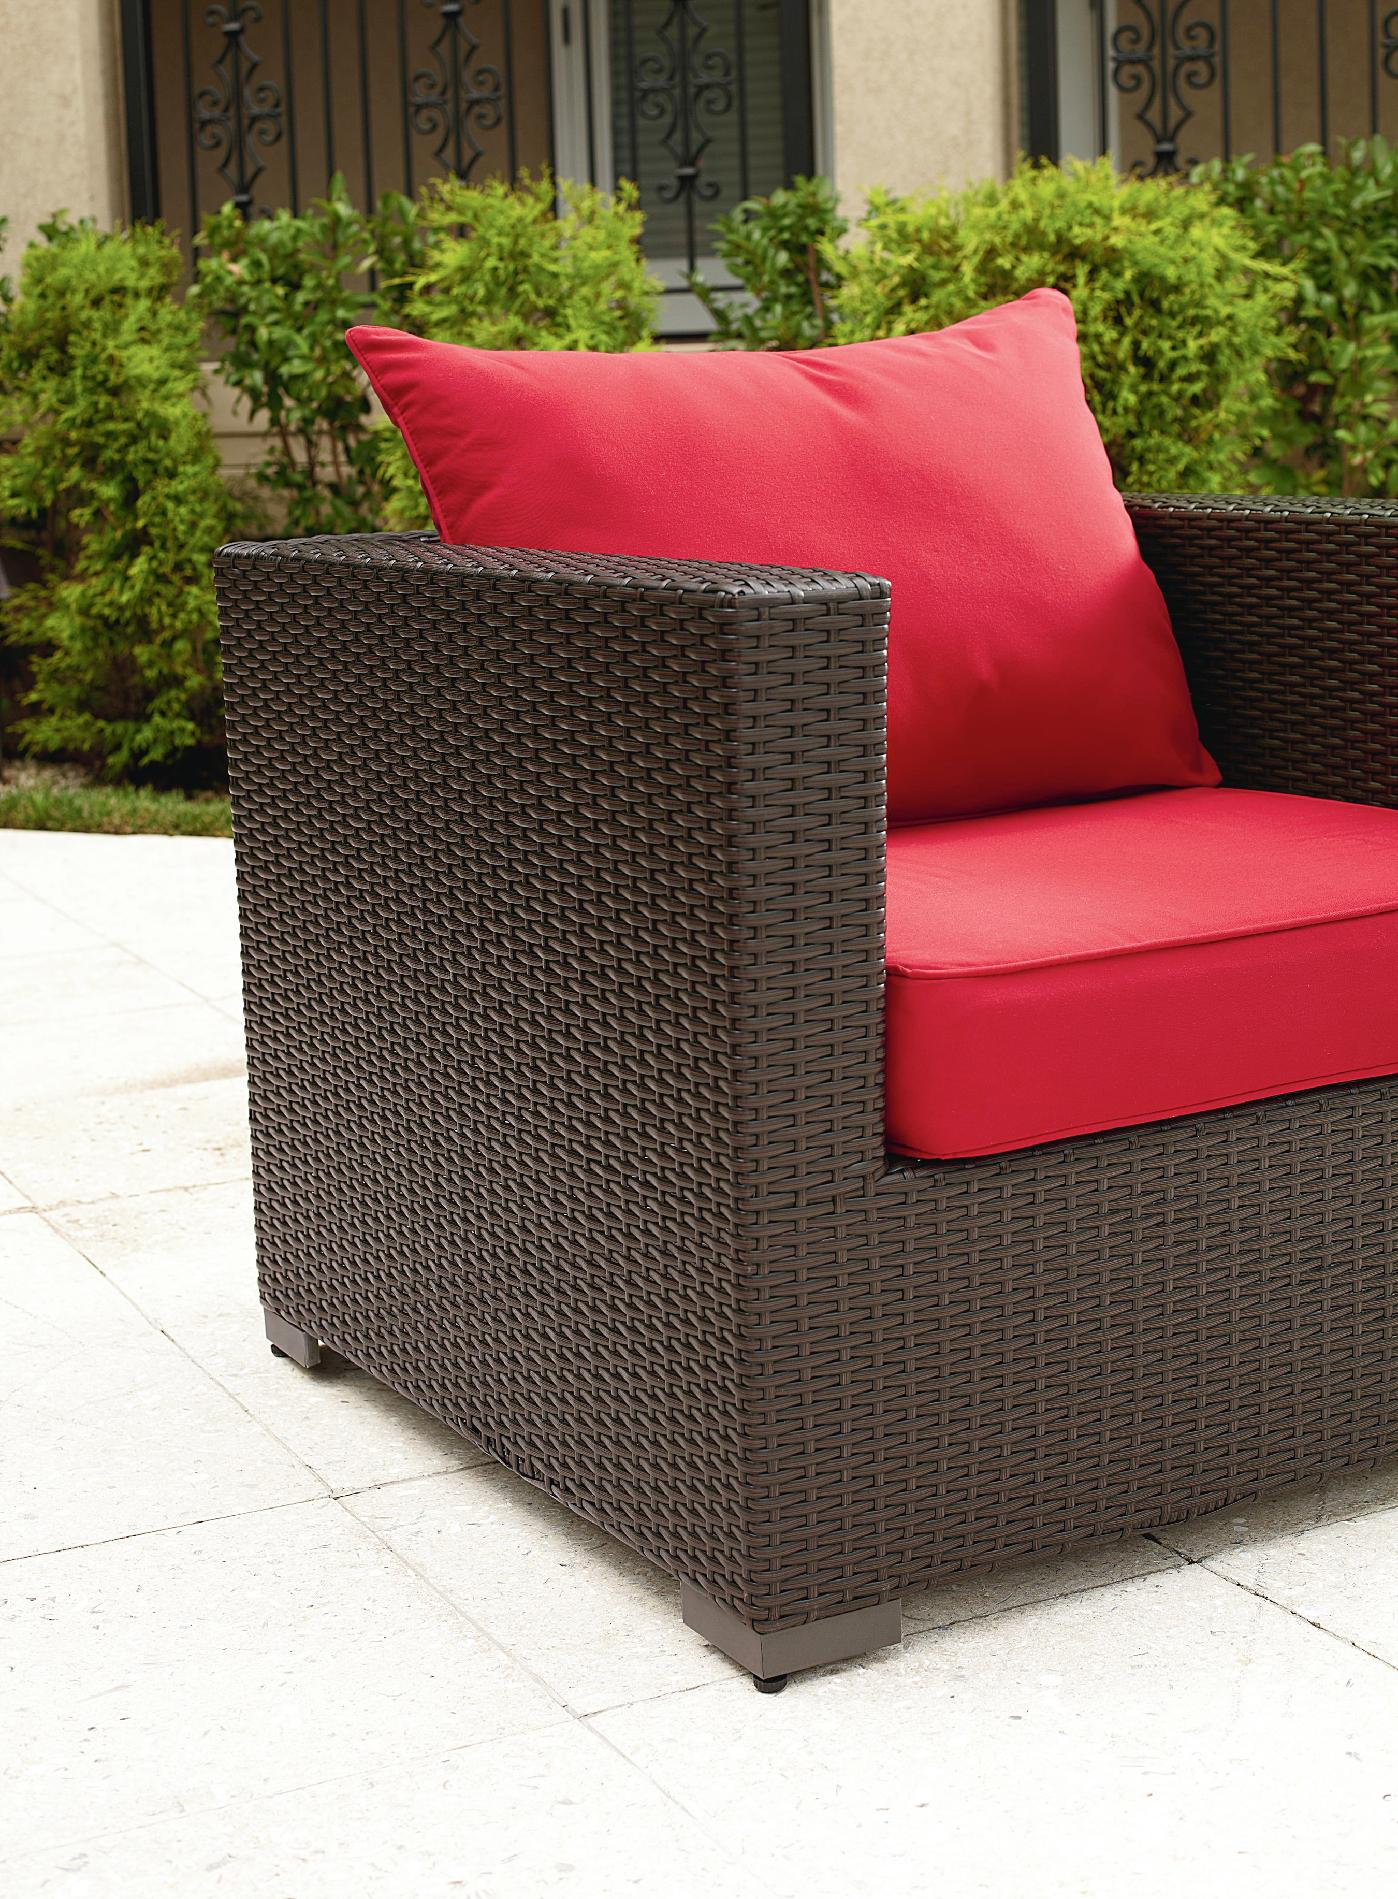 Grand Resort Osborn 7 Piece Sofa Seating Set Featuring Sunbrella&reg Fabric* Limited Availability